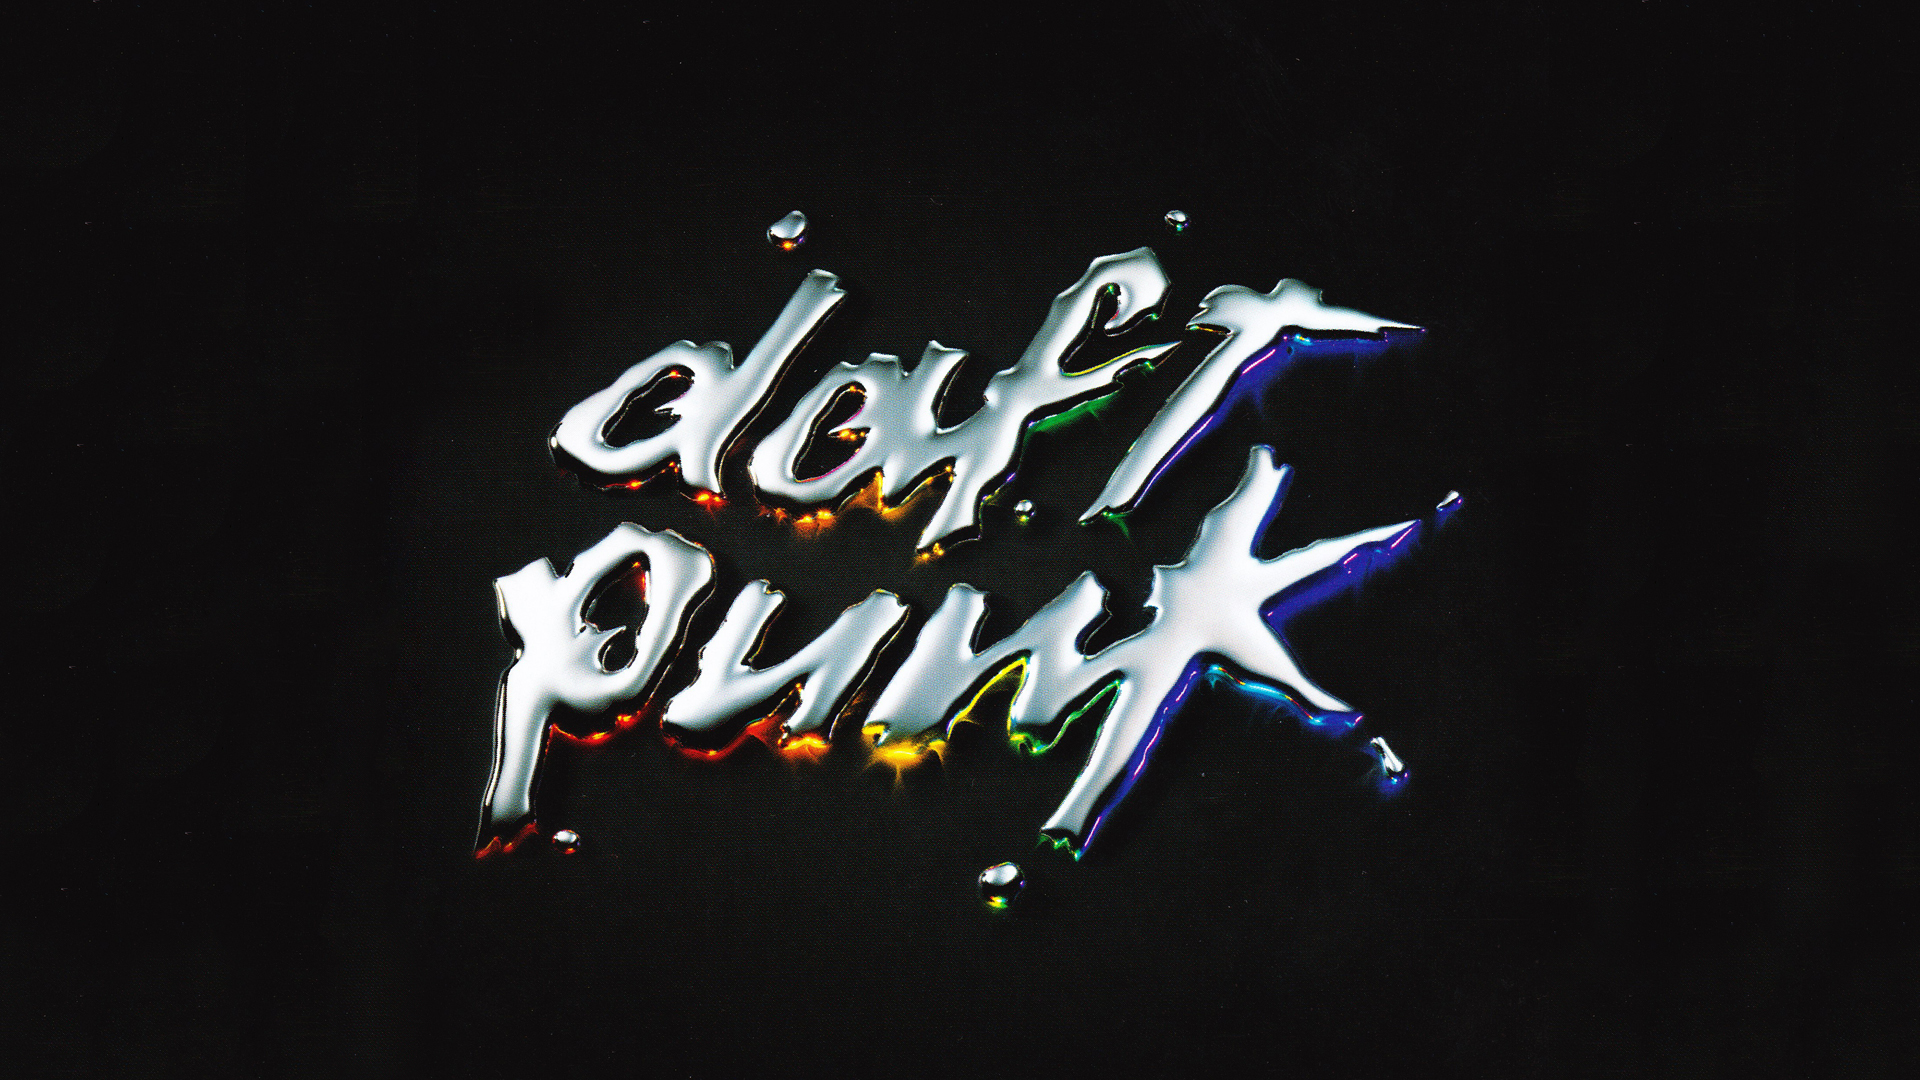 Daft Punk Discovery Wallpaper by UberDerpyHooves on DeviantArt